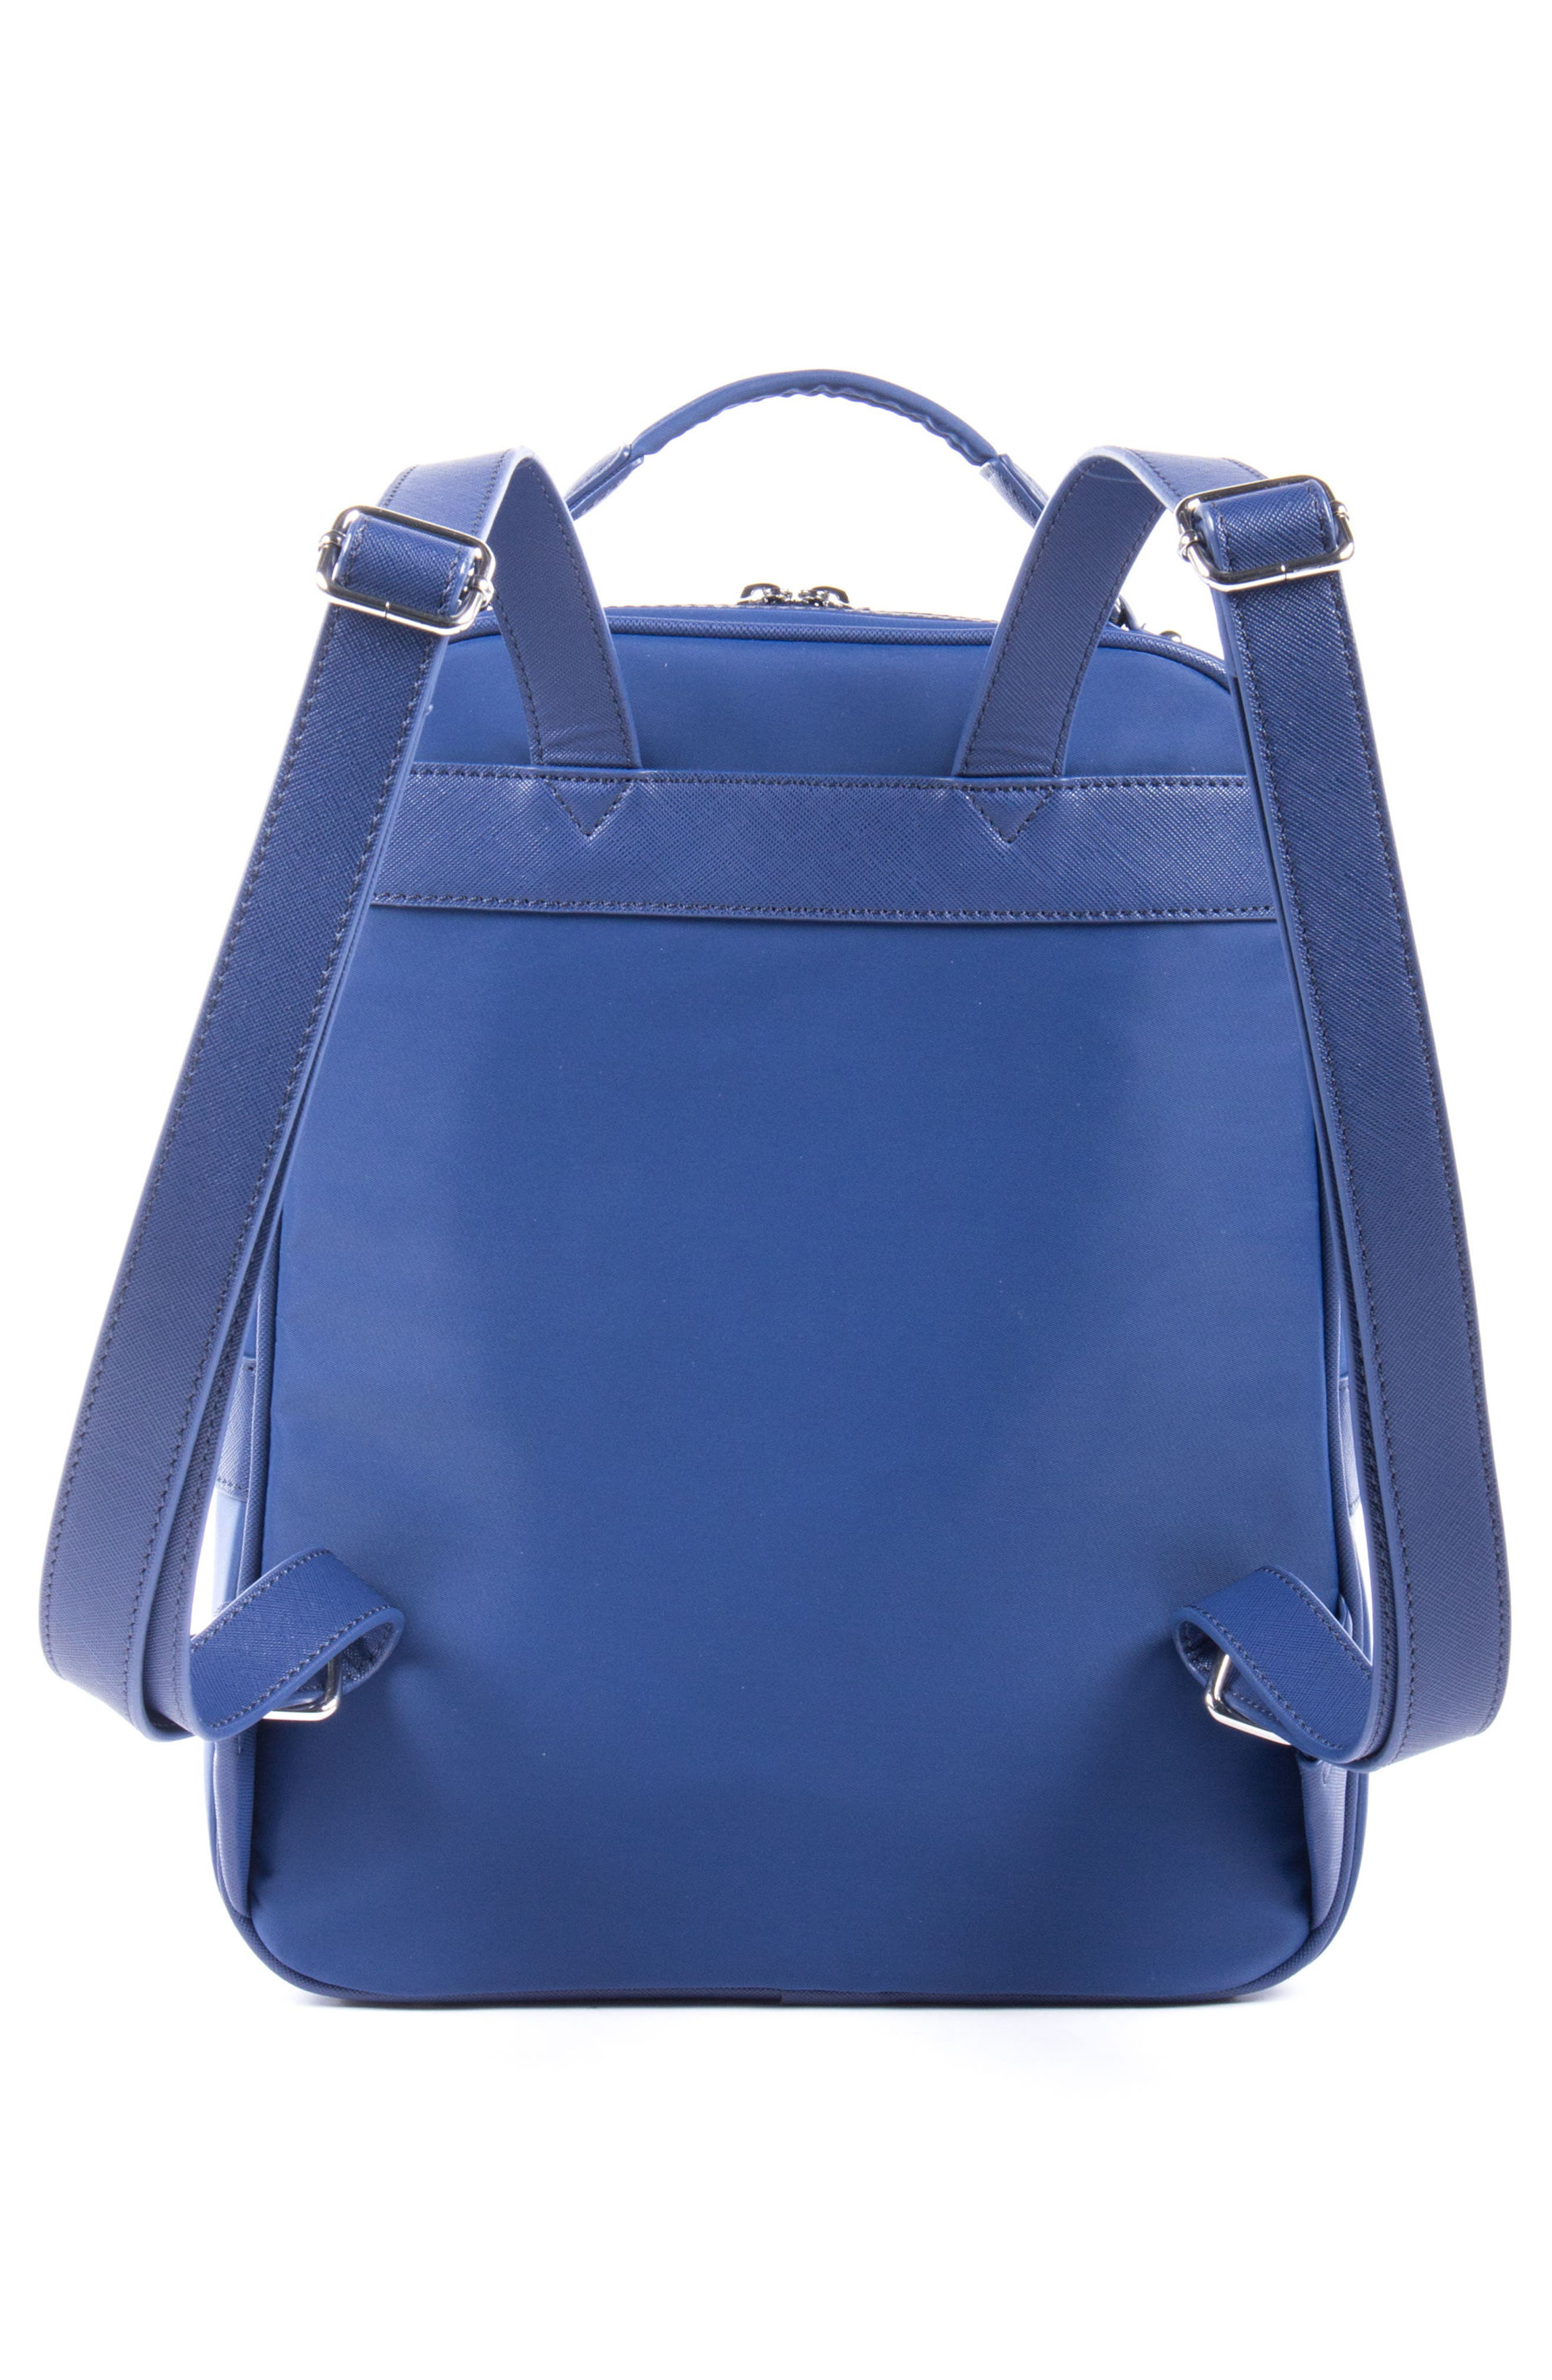 Céline Dion Presto Nylon Backpack,                             Alternate thumbnail 2, color,                             Blue